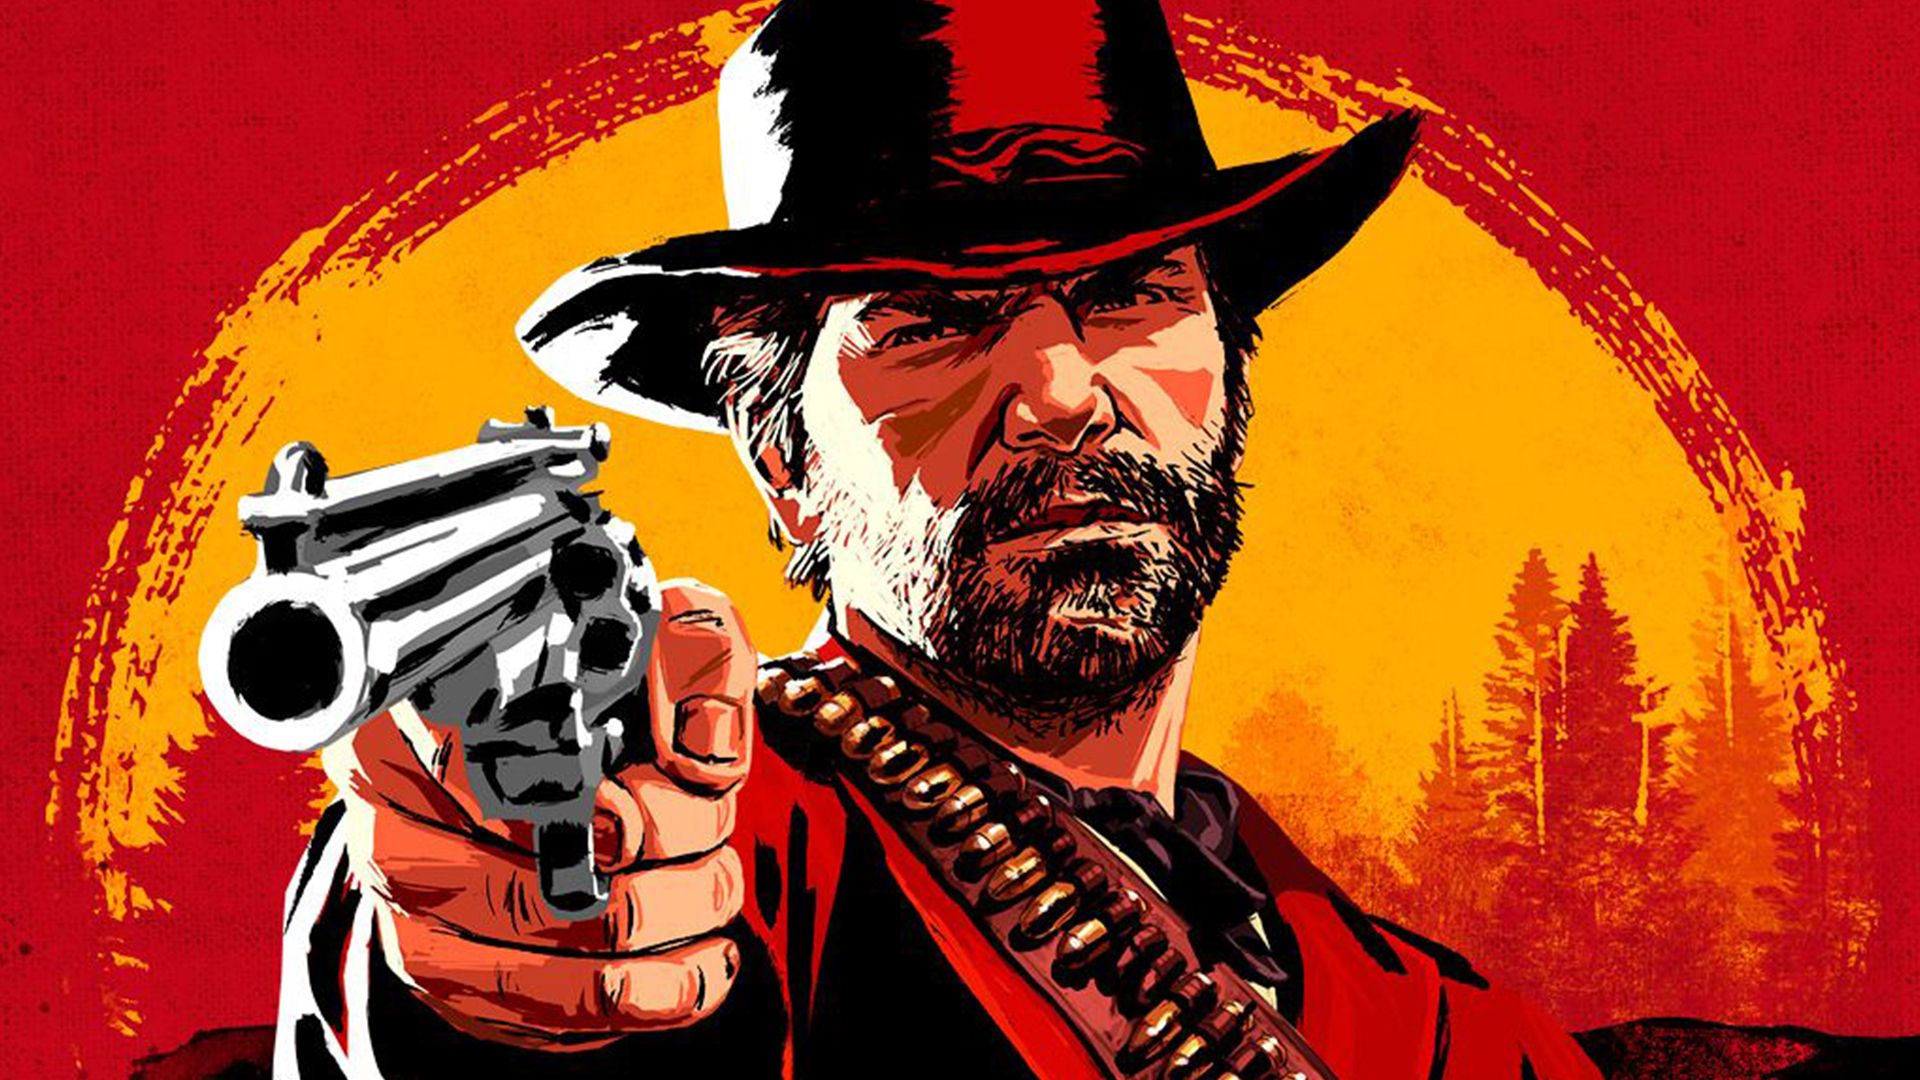 red dead redemption 2 wallpapers 4k full hd